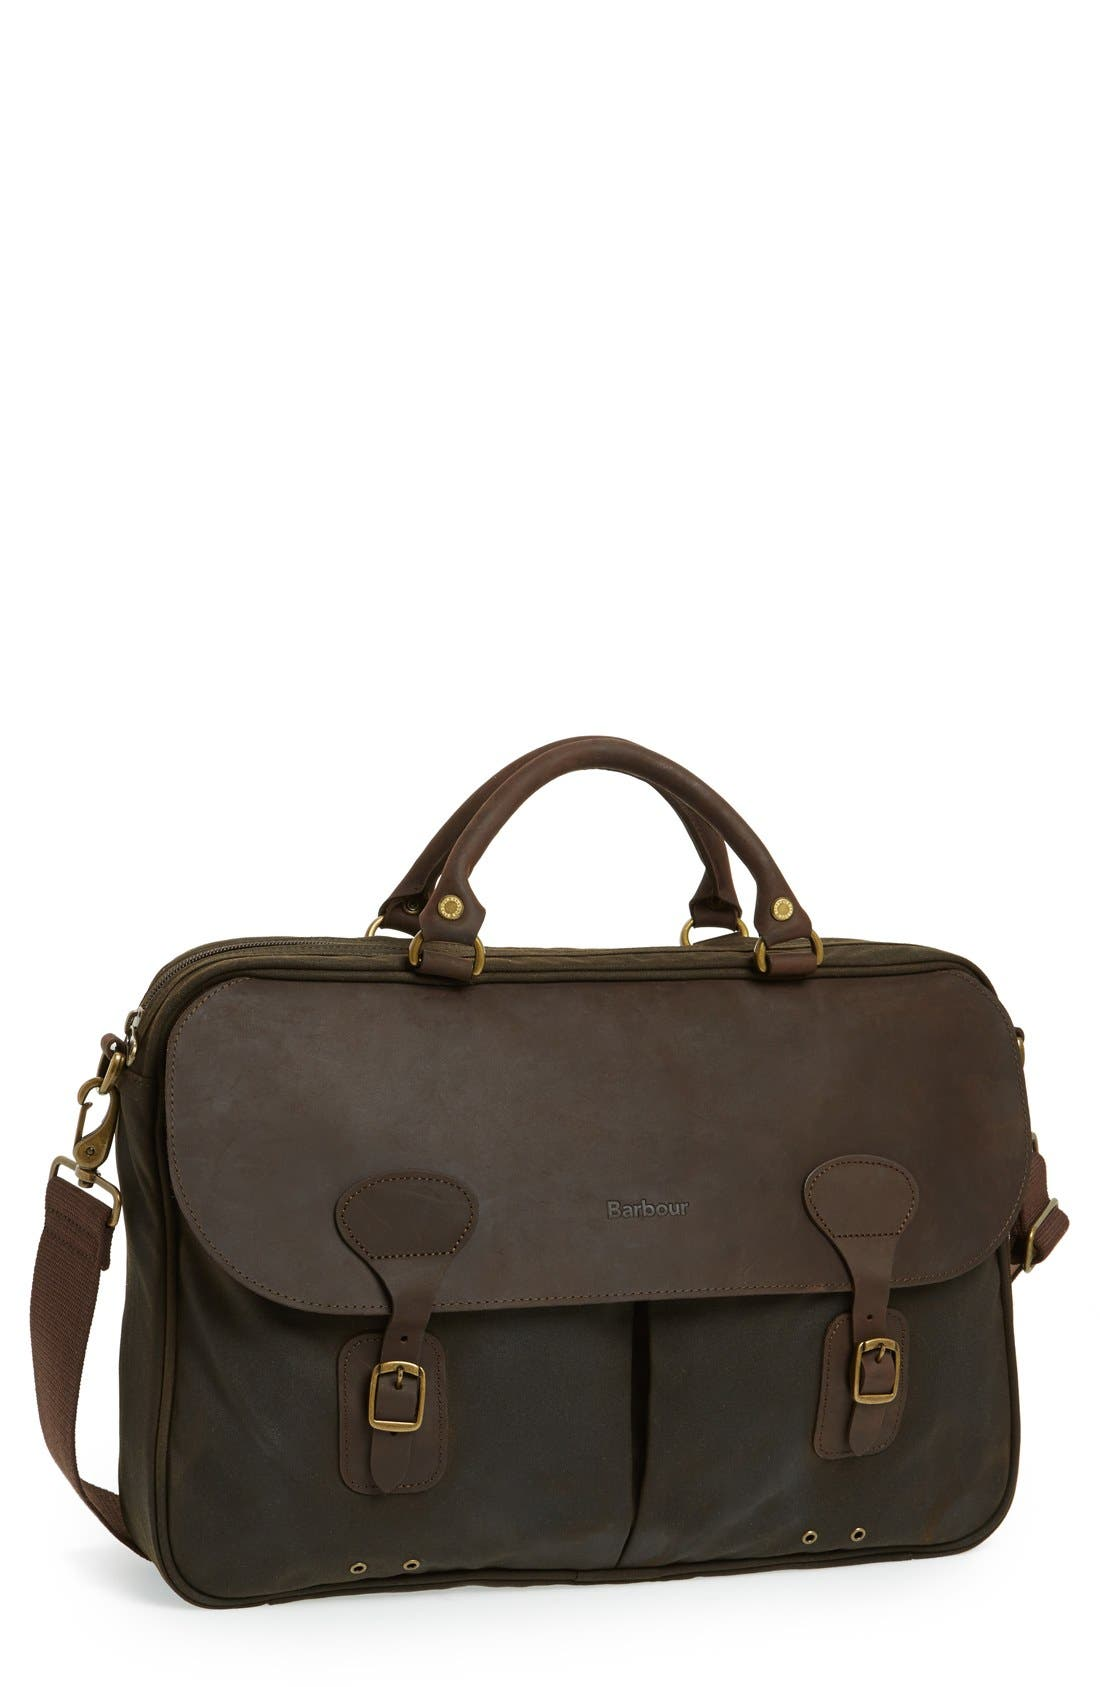 Waxed Canvas Briefcase,                             Main thumbnail 1, color,                             OLIVE/ BROWN